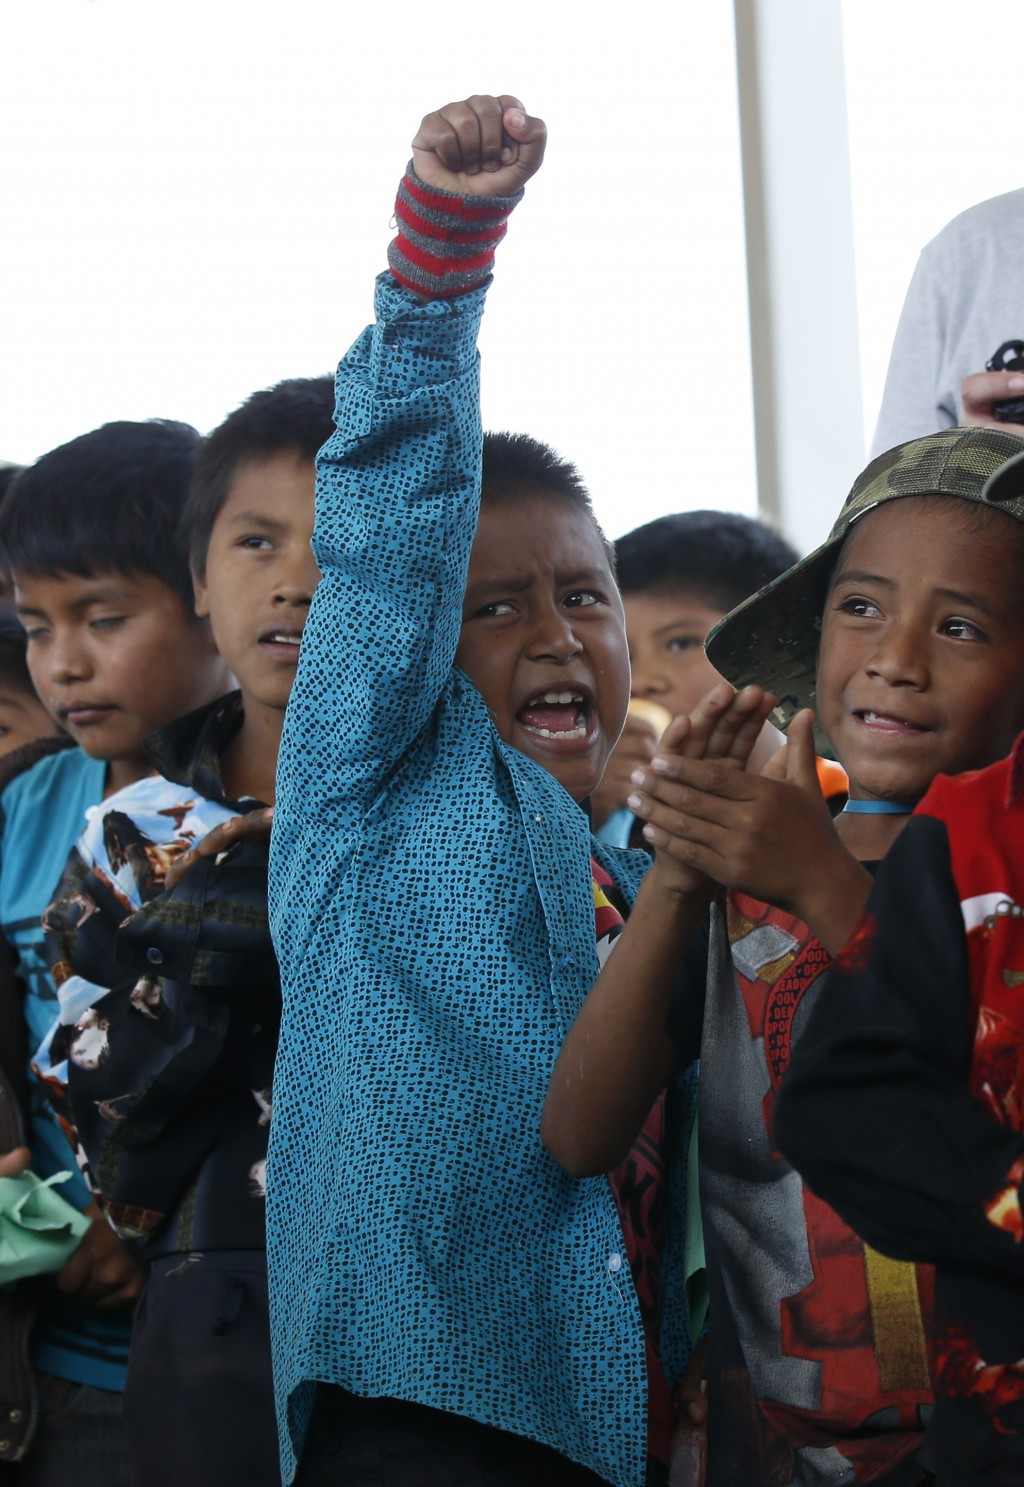 Children cheer for community policemen who delivered toys as part of the Children's Day festivities in Alcozacan, Guerrero state, Mexico, Friday, Apri...